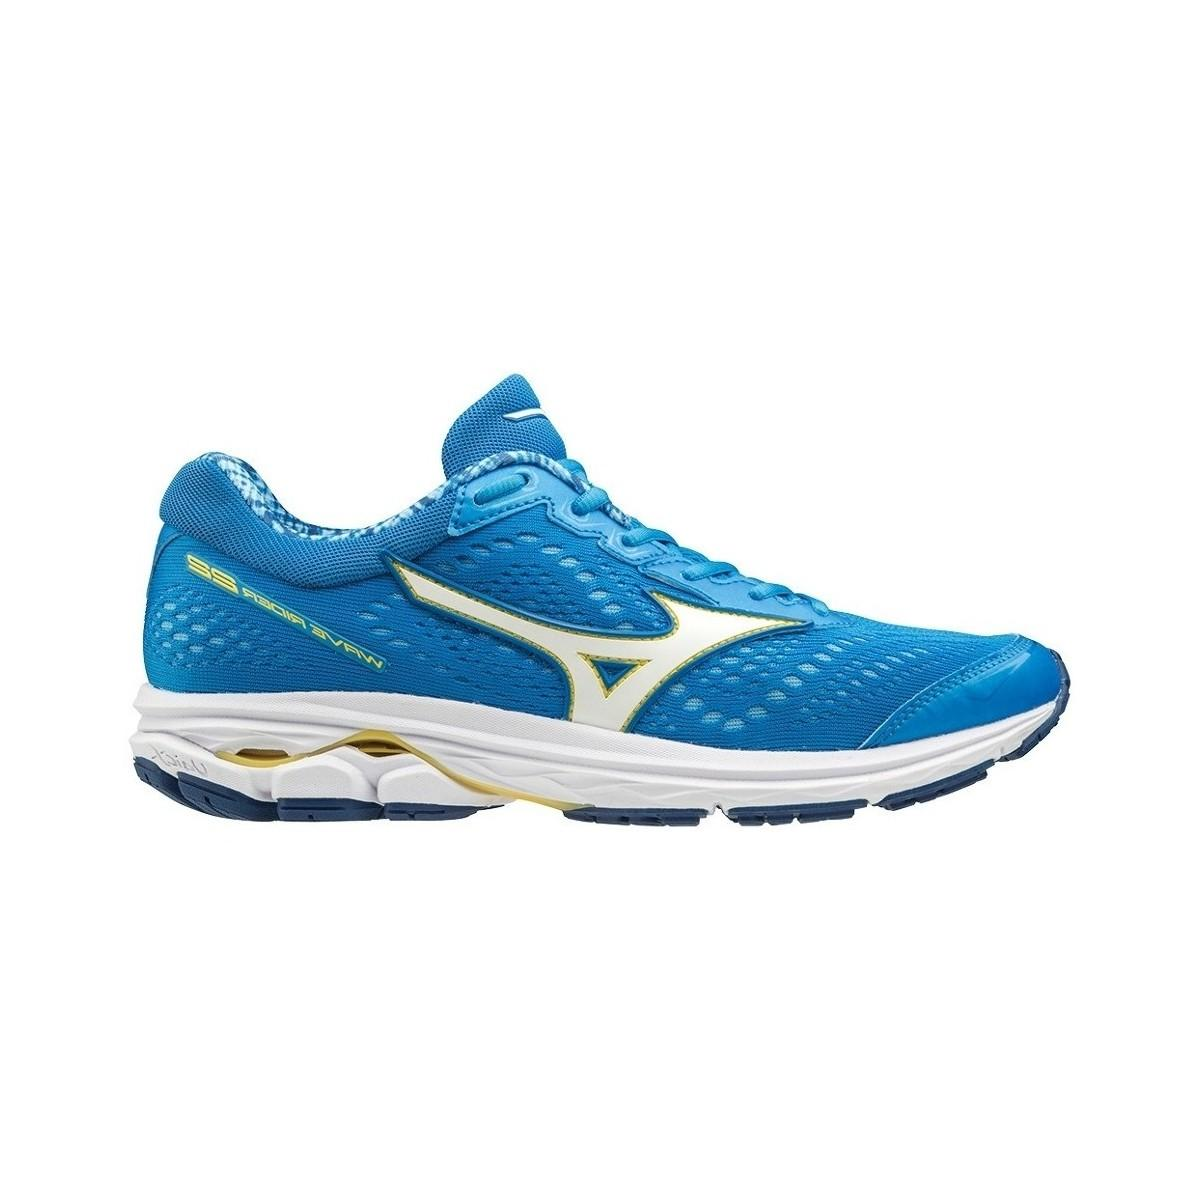 797797599dc4 Mizuno Wave Rider 22 Women's Shoes (trainers) In Blue in Blue - Lyst